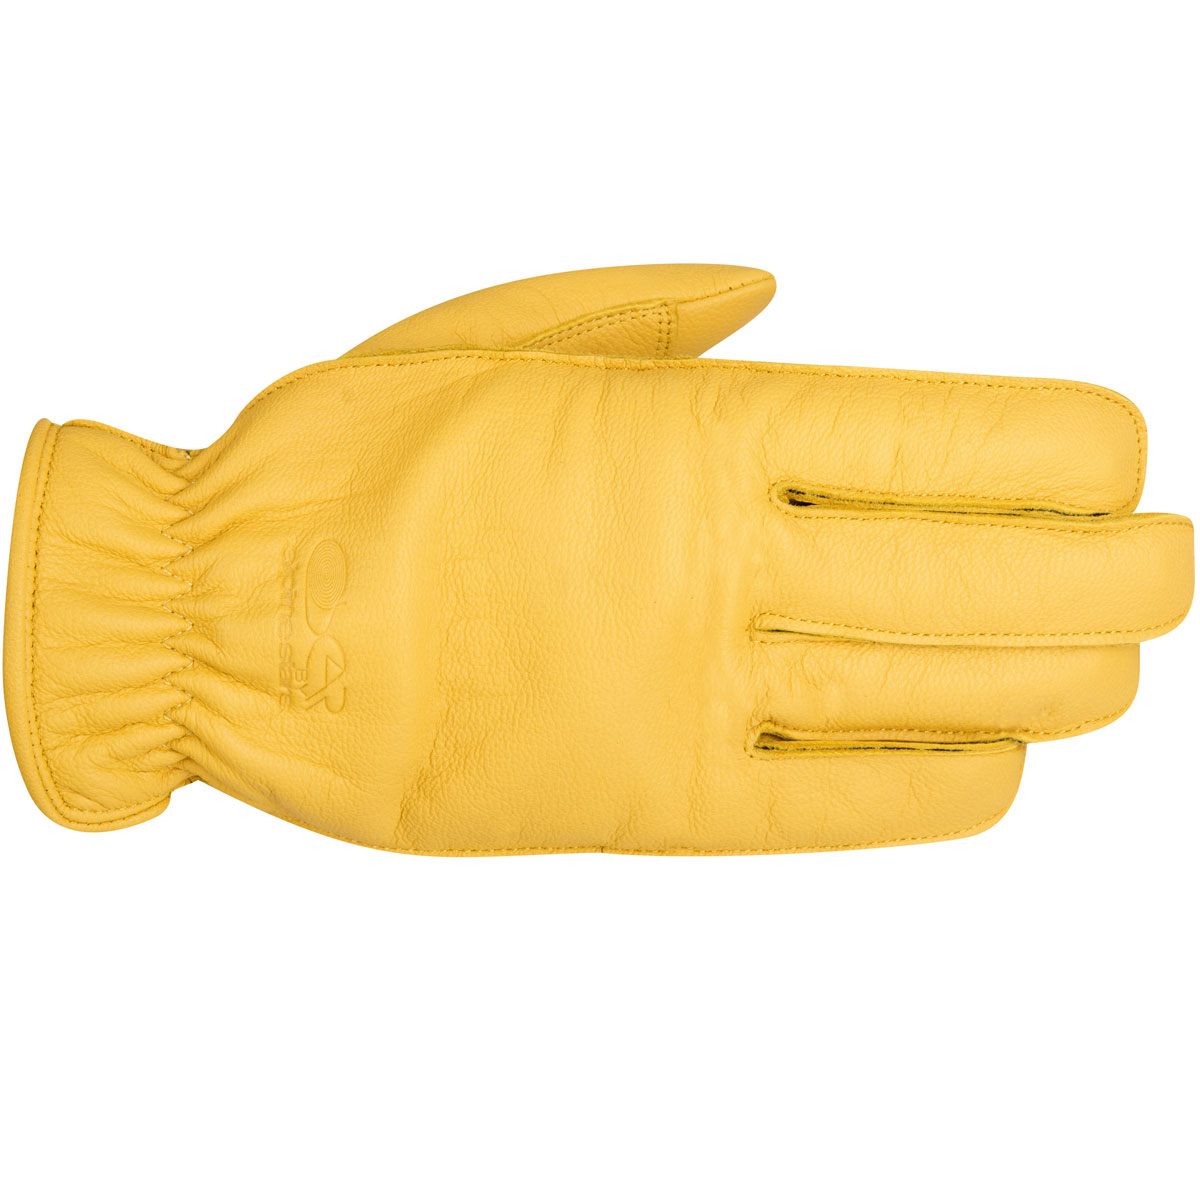 Alpine stars Bandit Mens Leather Glove Tan